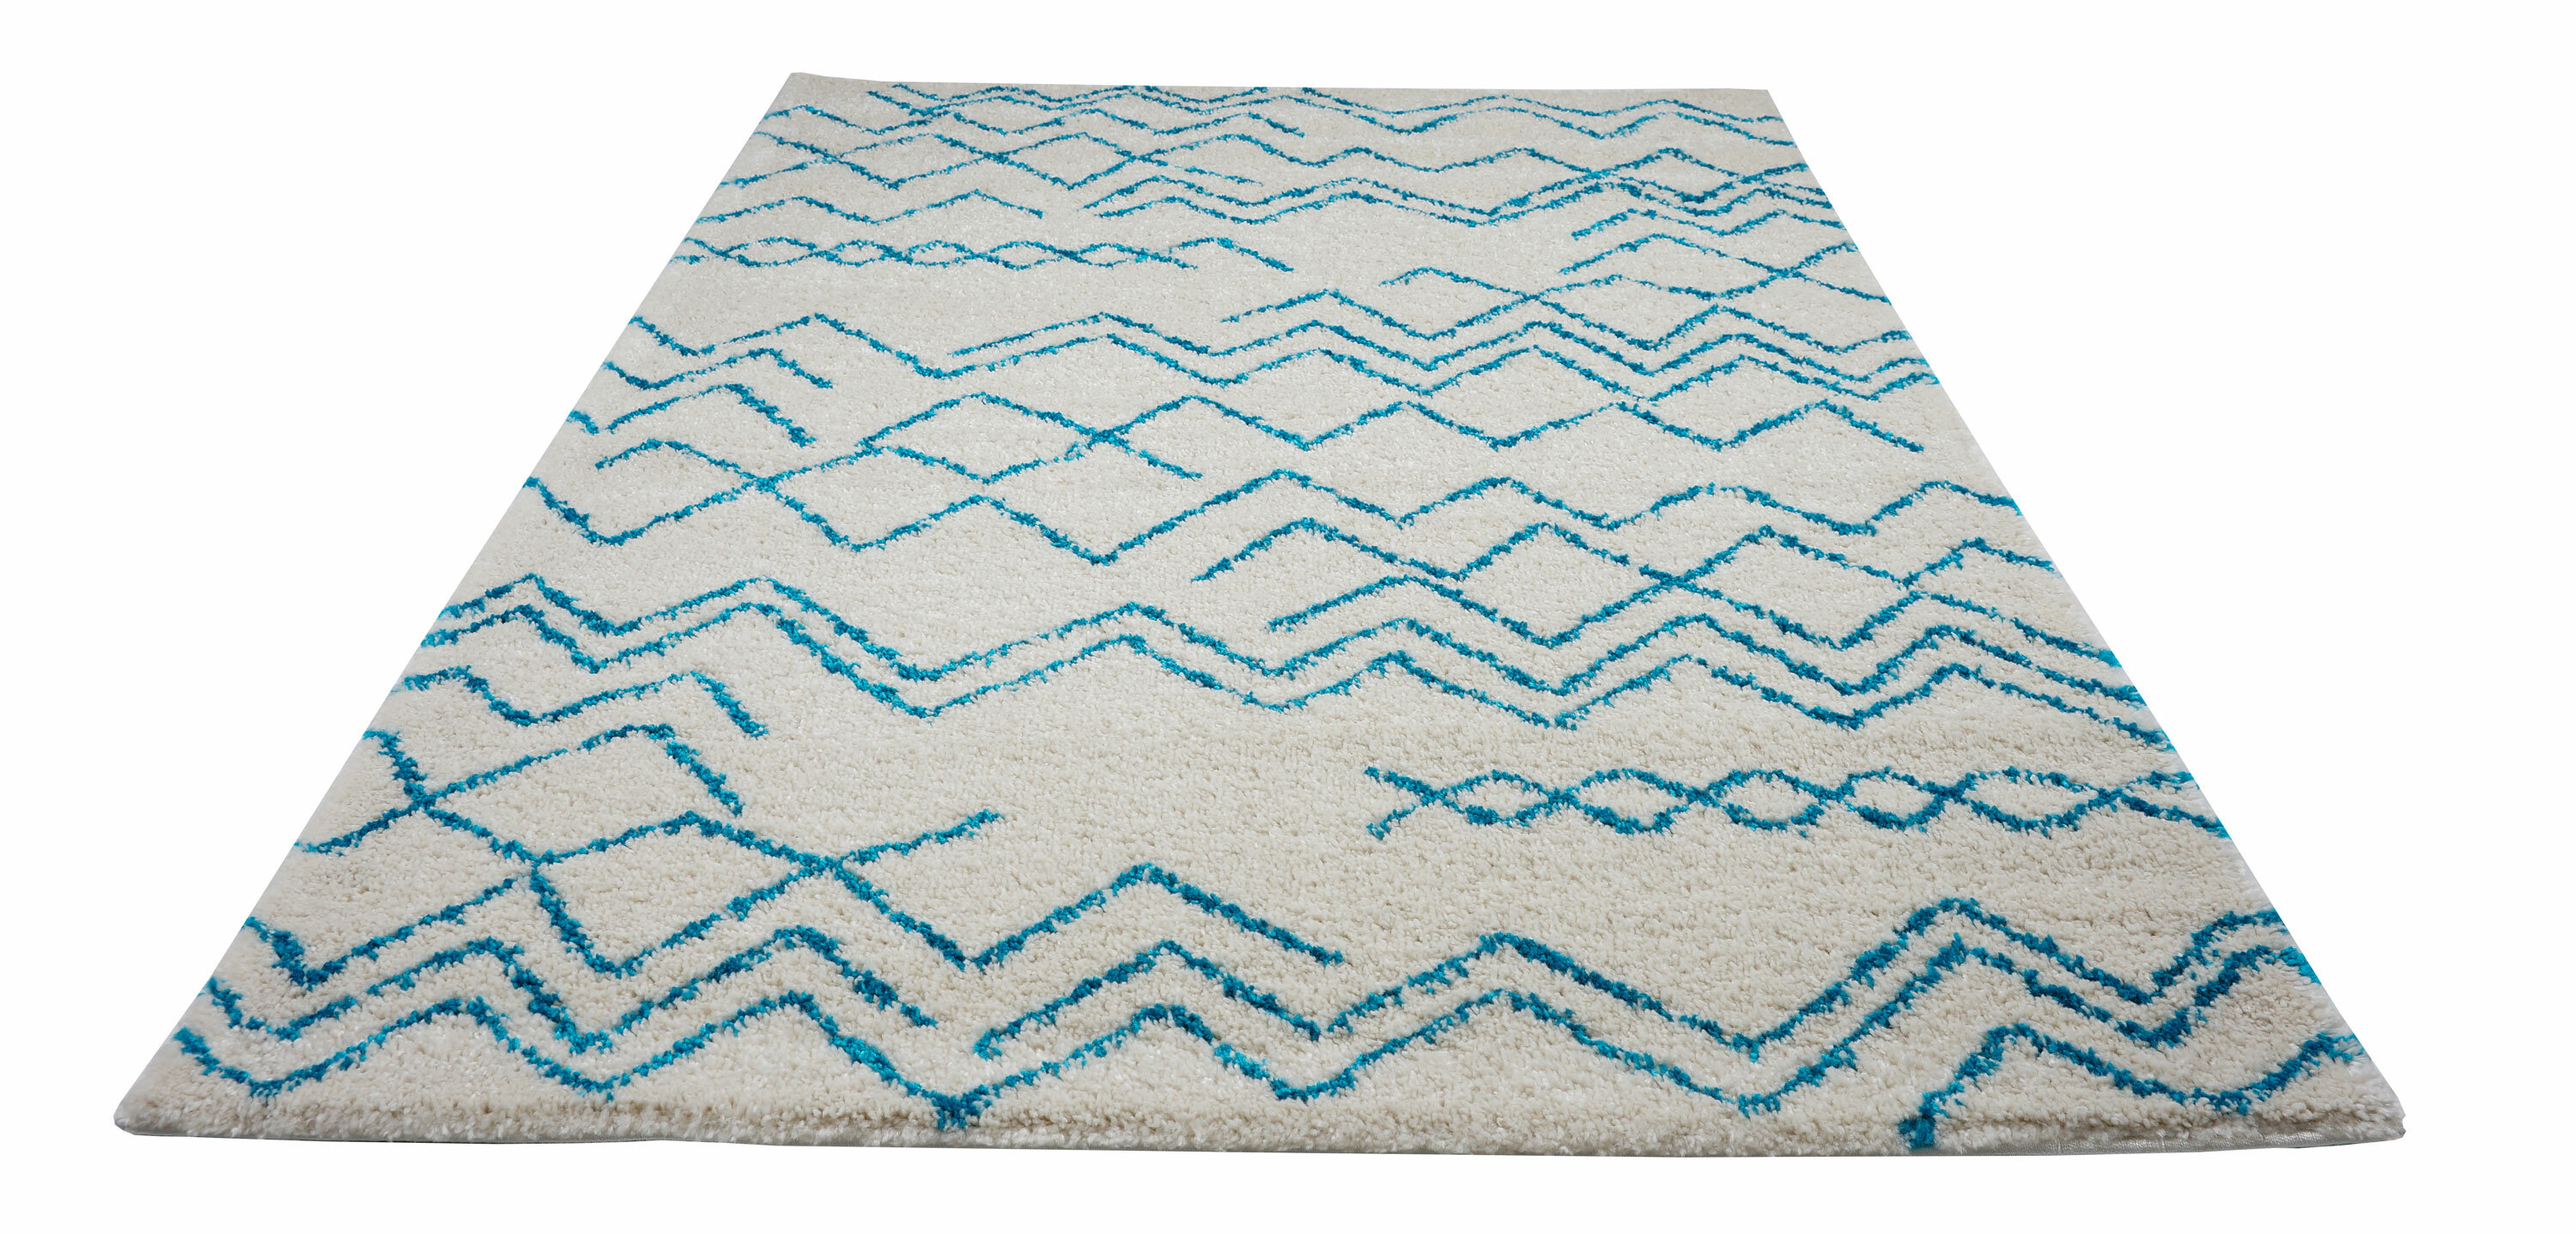 Foundry Select Jacoby Chevron Ivory Turquoise Area Rug Wayfair